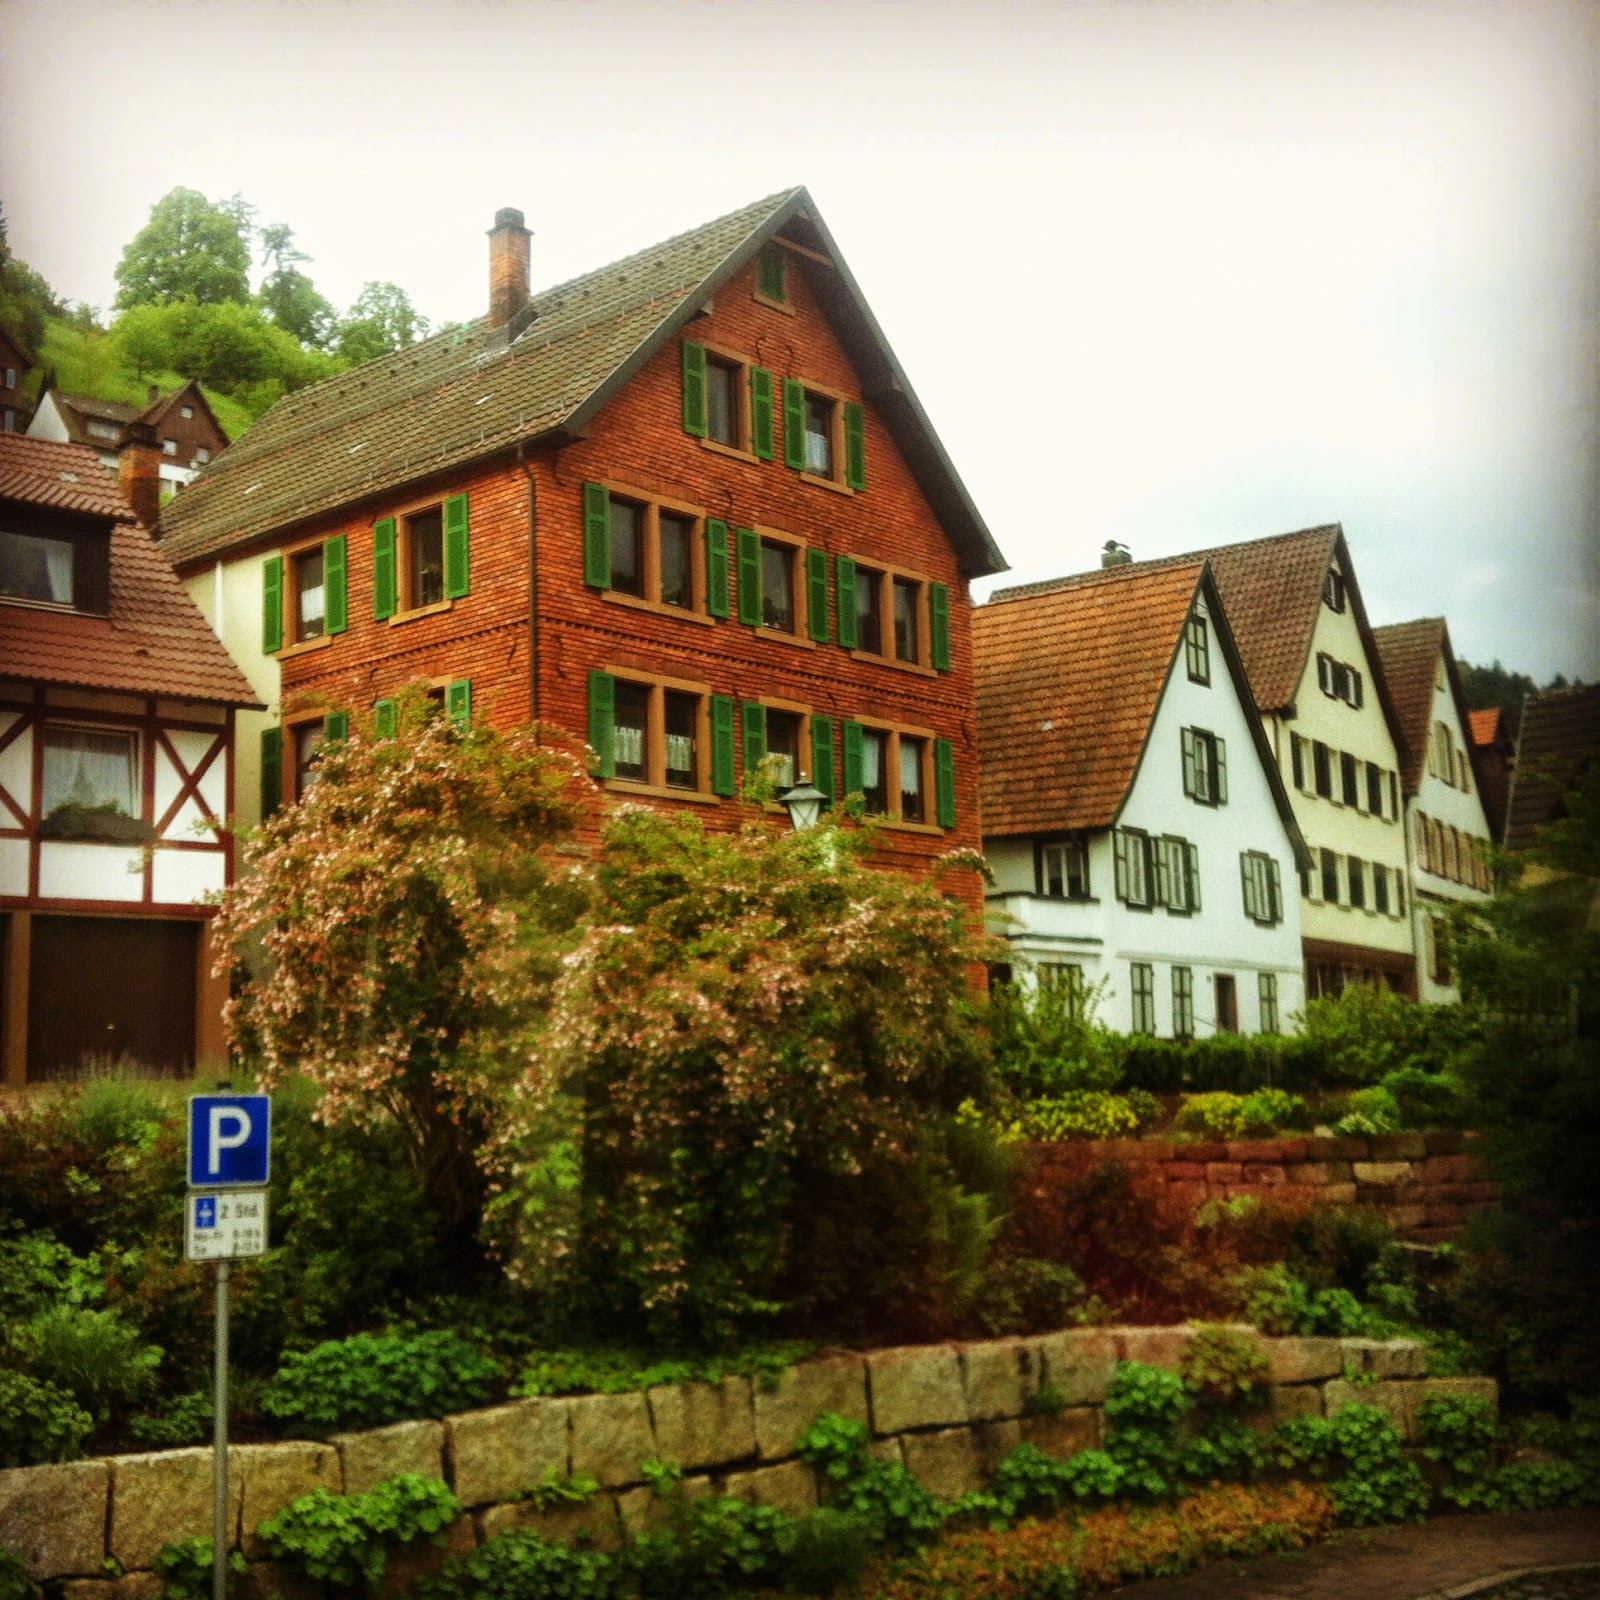 Picturesque town of Schiltach, home of Hansgrohe